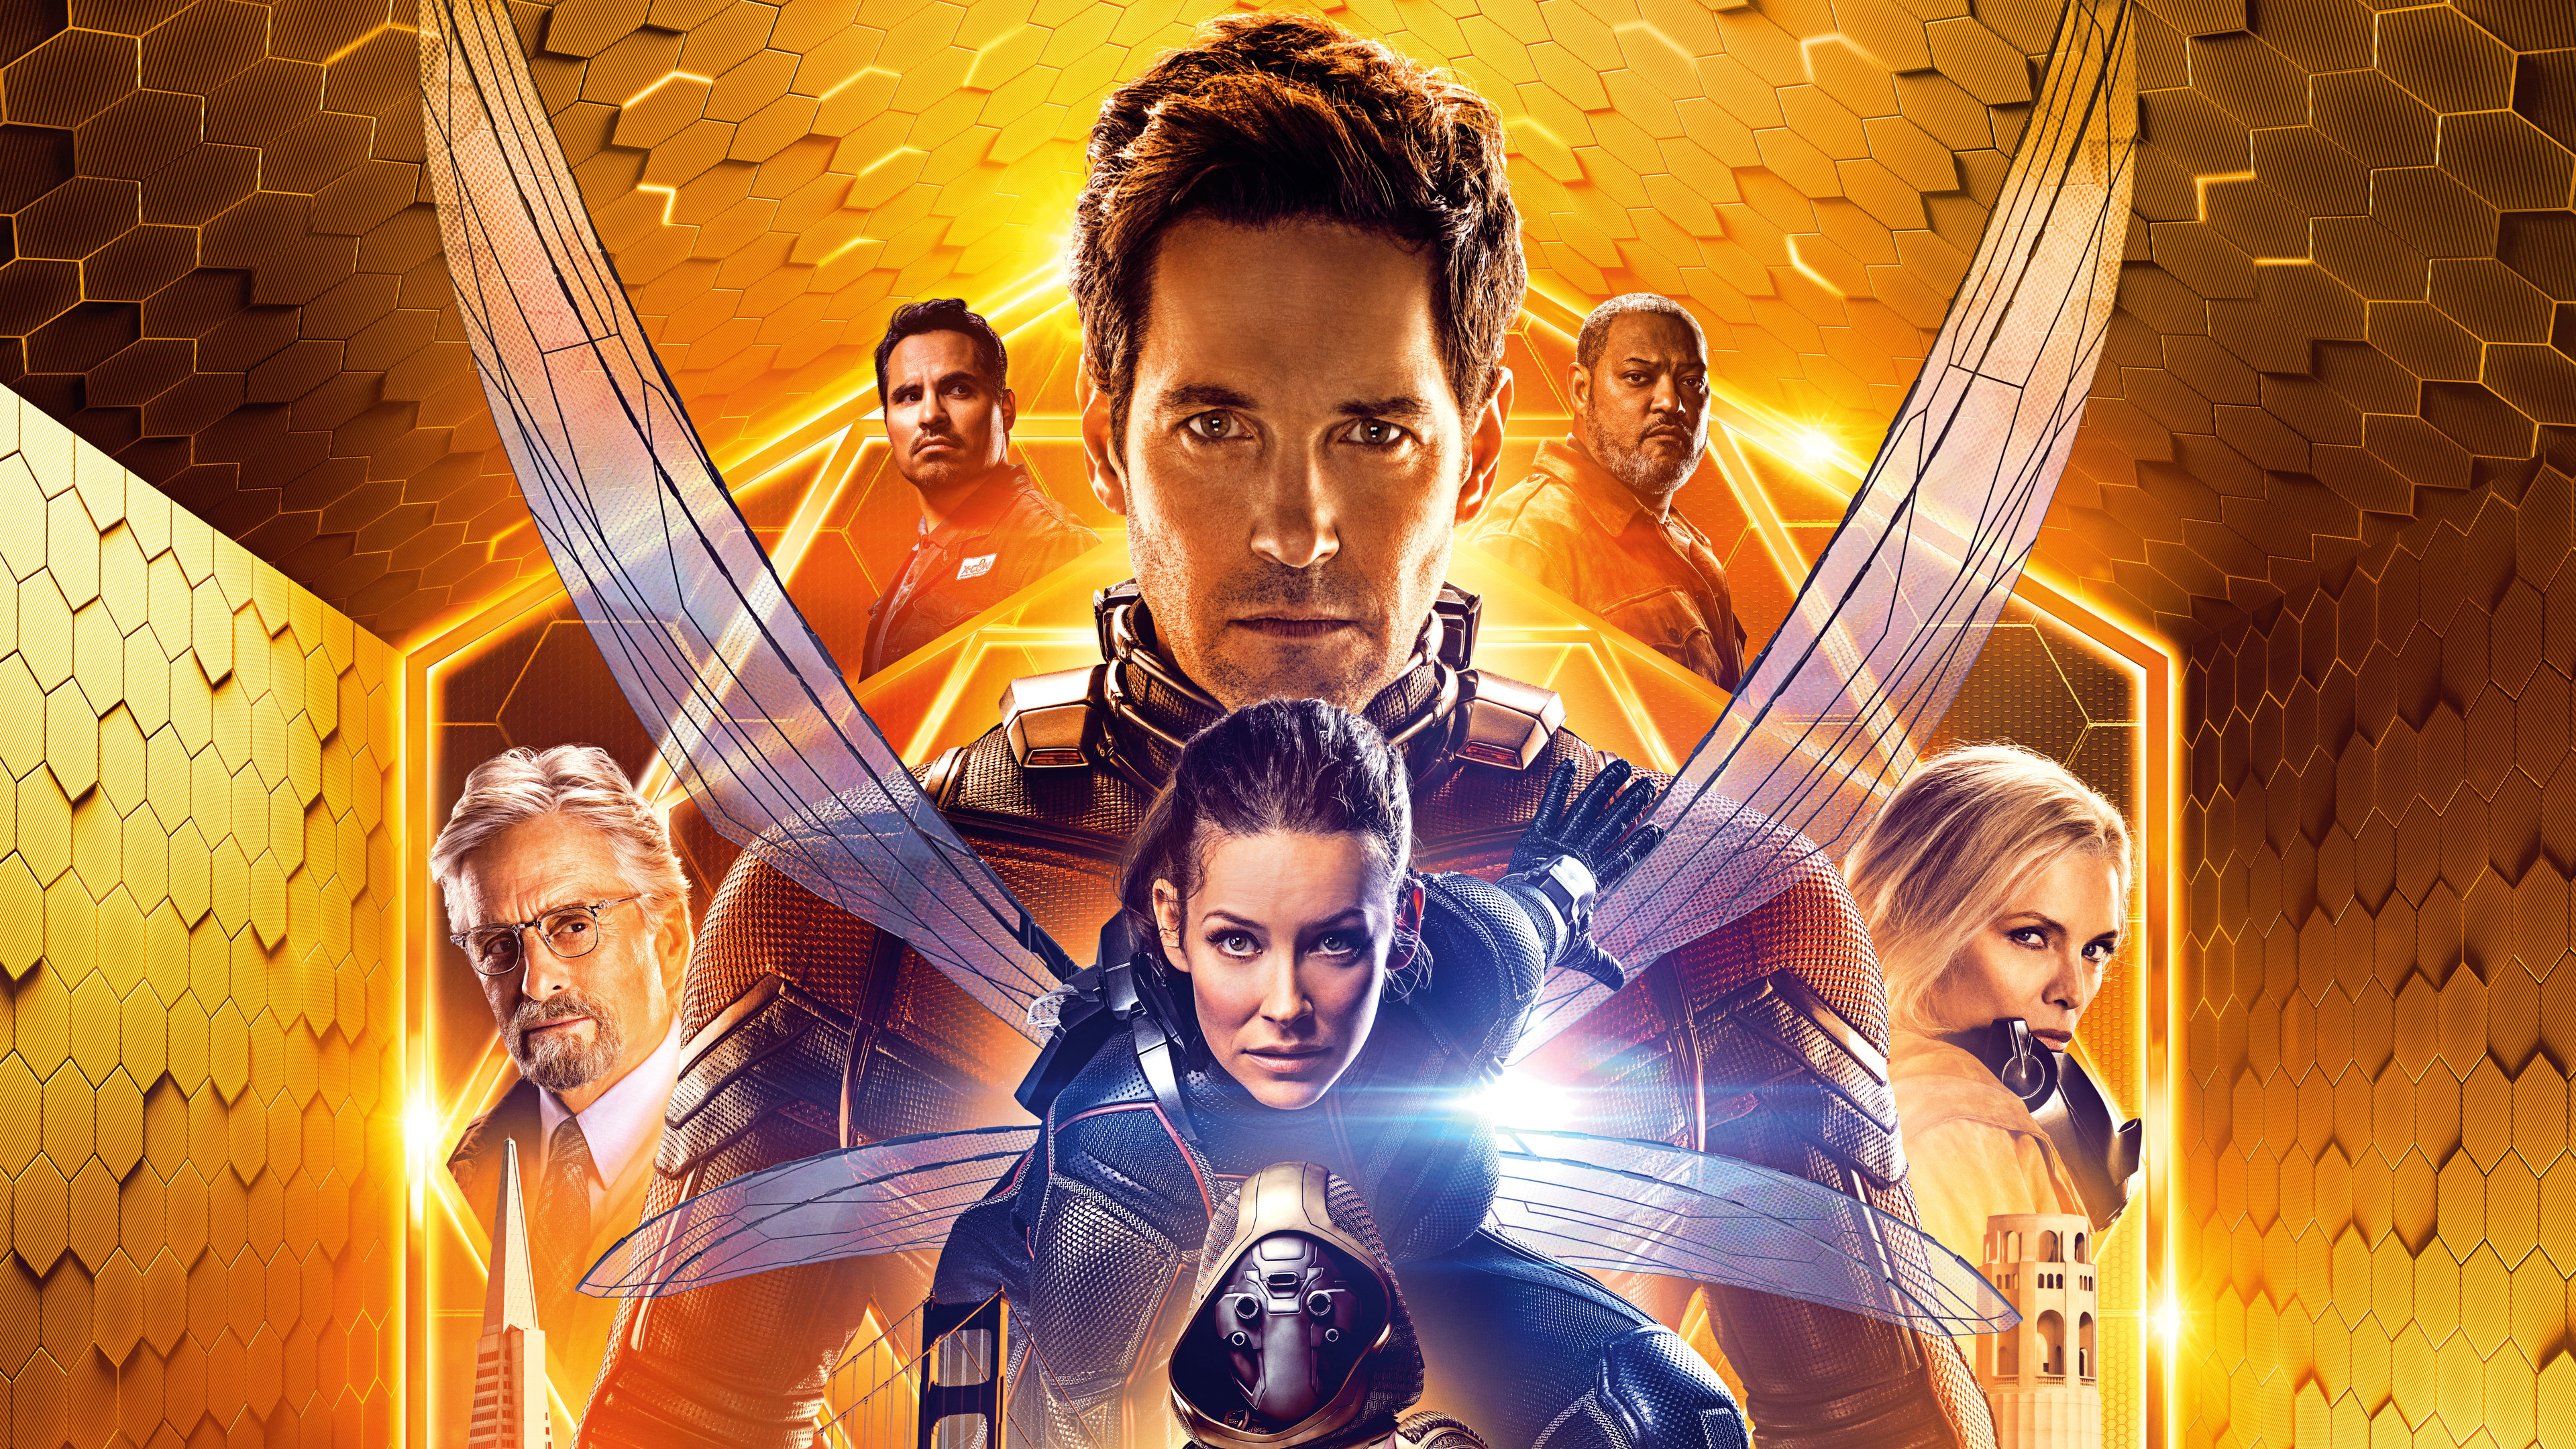 ant man and the wasp movie 8k 1537645194 - Ant Man And The Wasp Movie 8k - movies wallpapers, hd-wallpapers, ant man wallpapers, ant man and the wasp wallpapers, 8k wallpapers, 5k wallpapers, 4k-wallpapers, 2018-movies-wallpapers